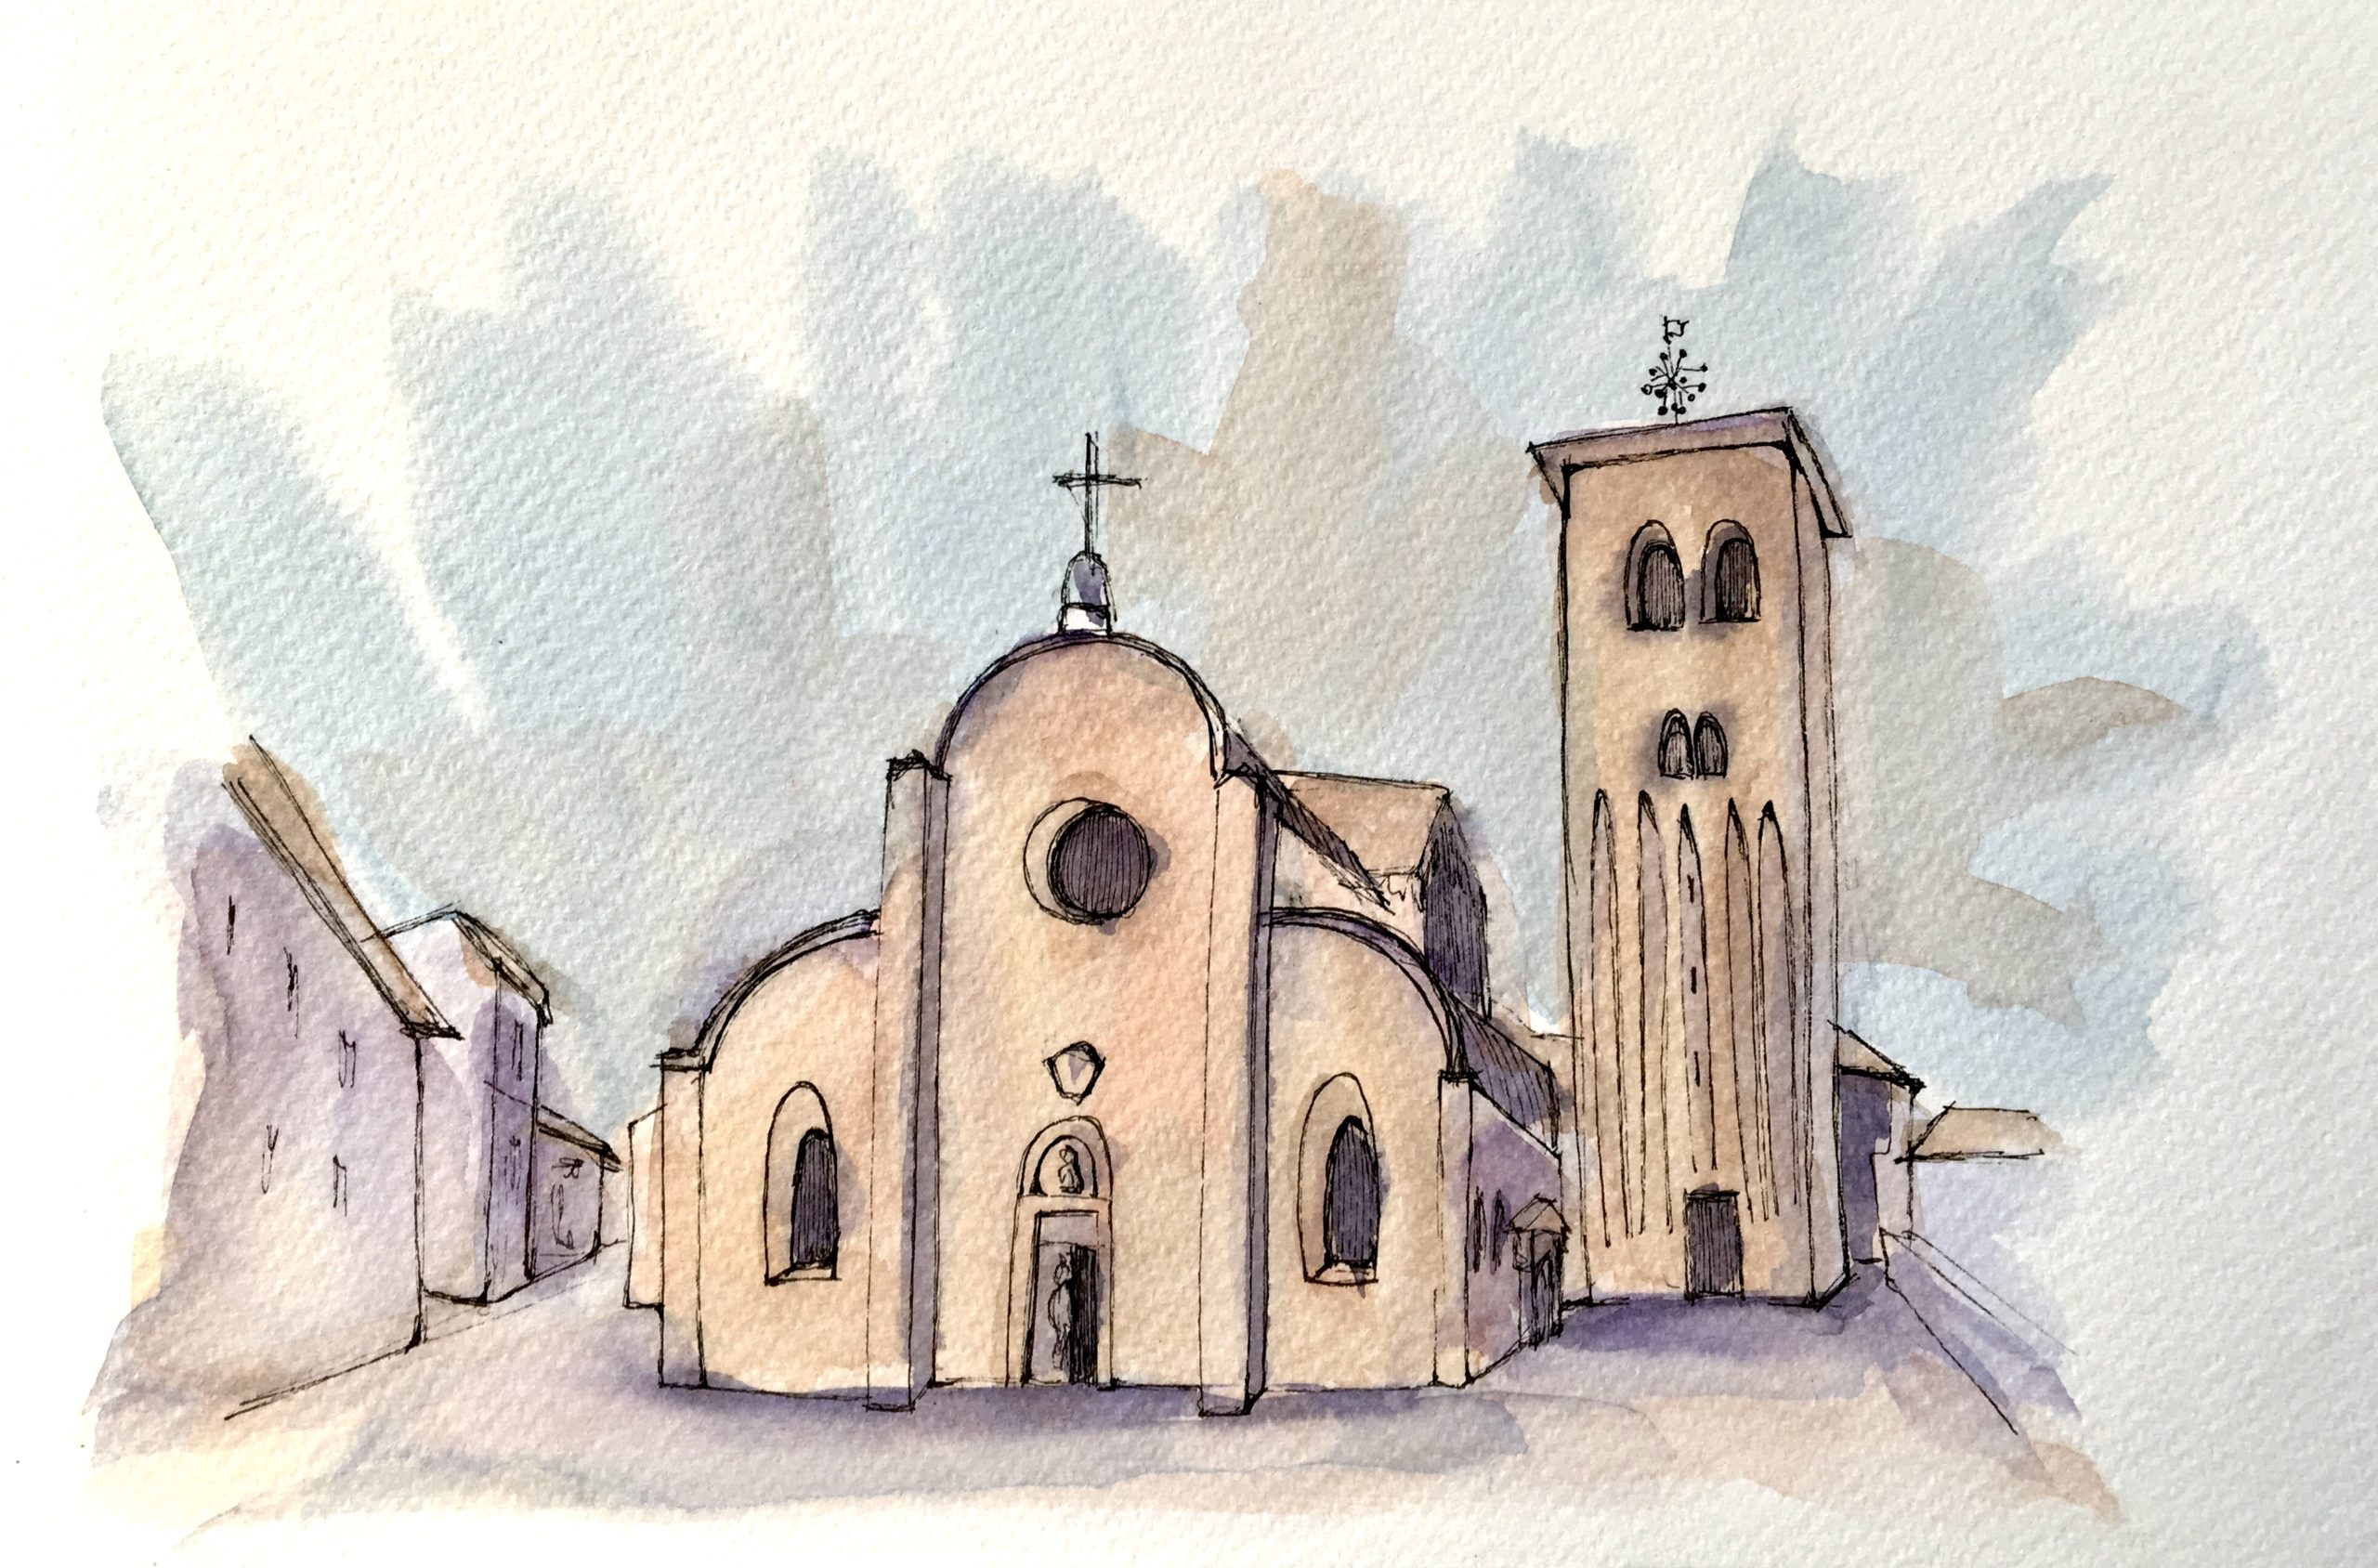 Painting of Cathedral of Santo Stefano in Concordia Sagittaria